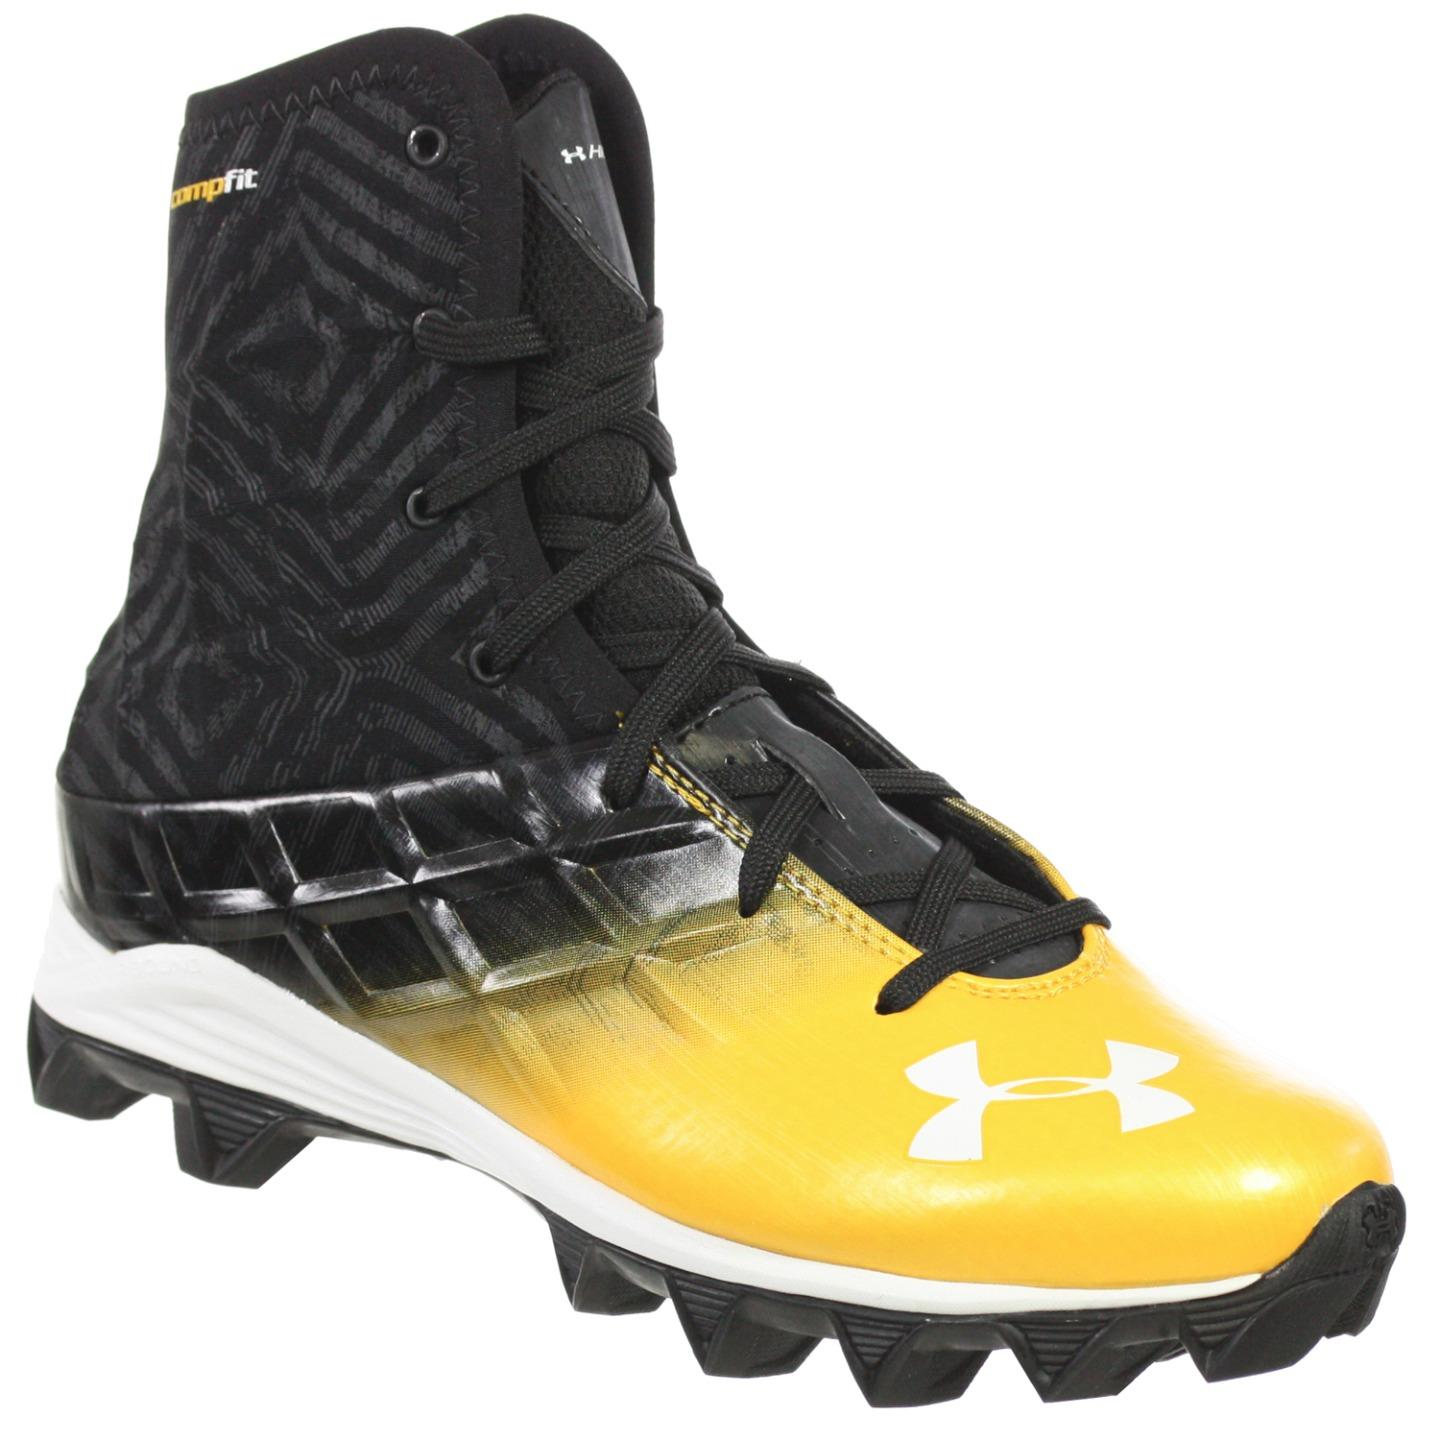 UNDER ARMOUR YOUTH HIGHLIGHT BOYS FOOTBALL SHOES RM BLACK GOLD 1Y